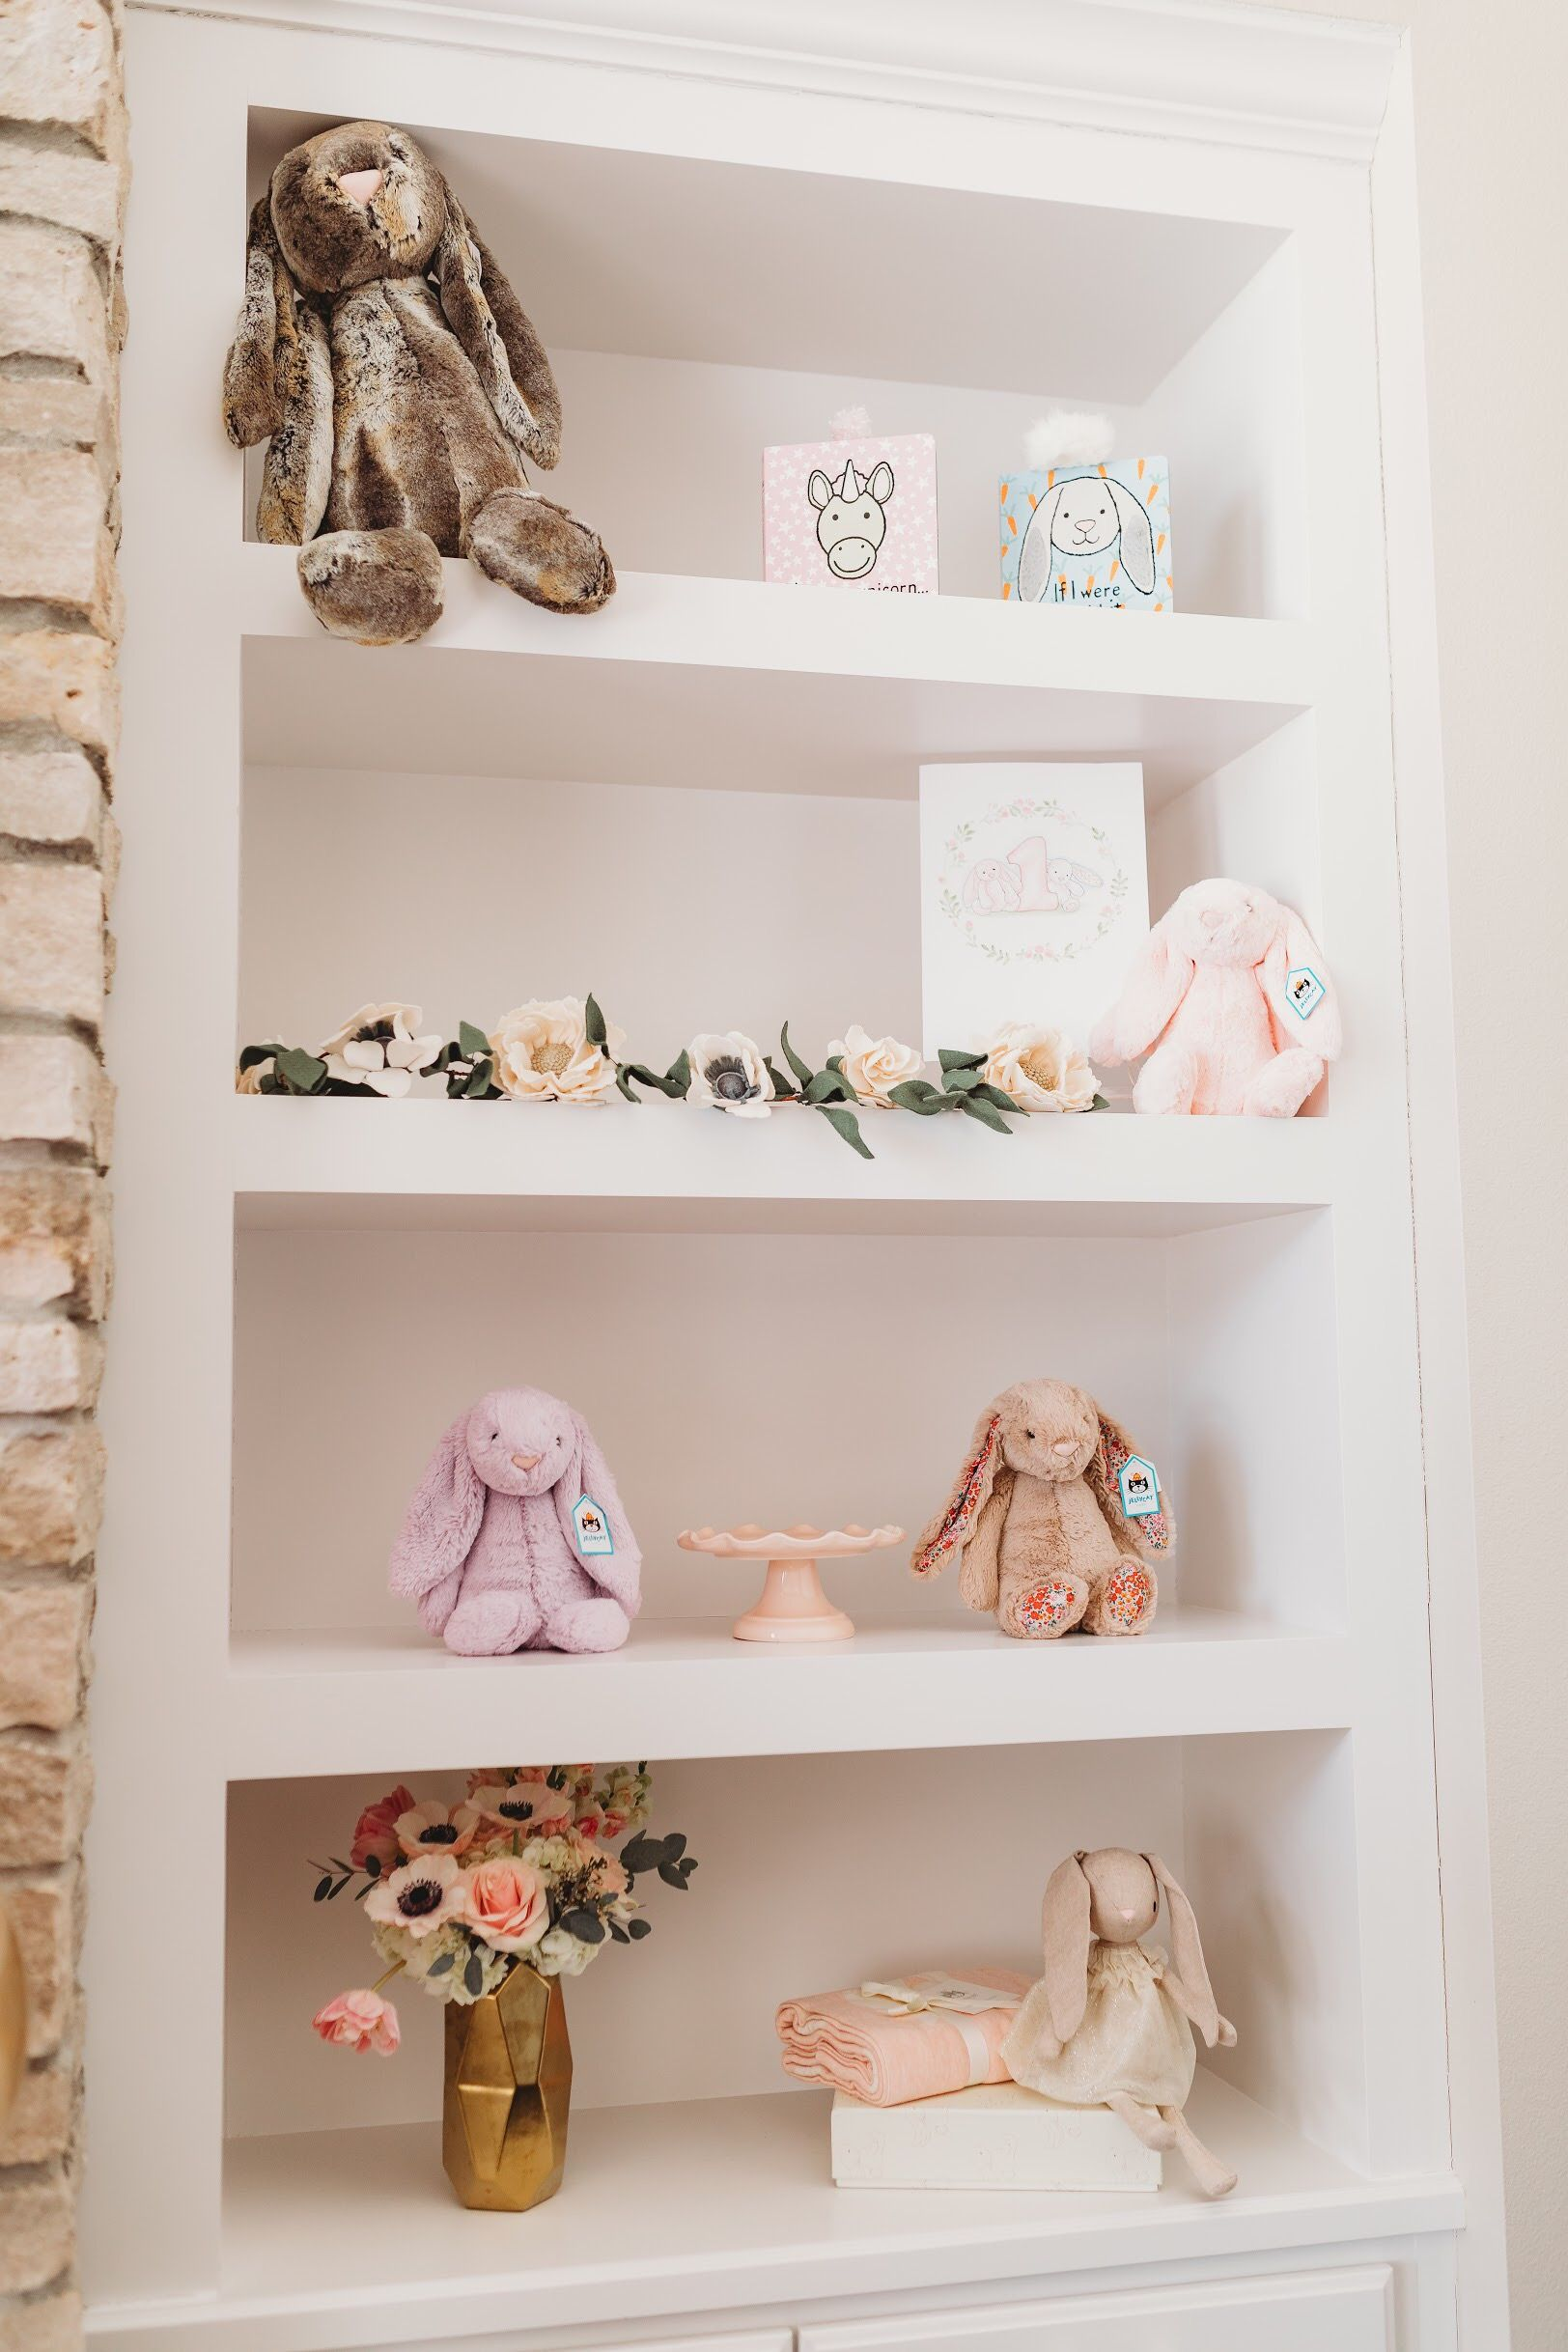 Jellycat First Birthday Party Project Nursery In 2020 Baby Room Shelves Modern Baby Room Small Baby Room